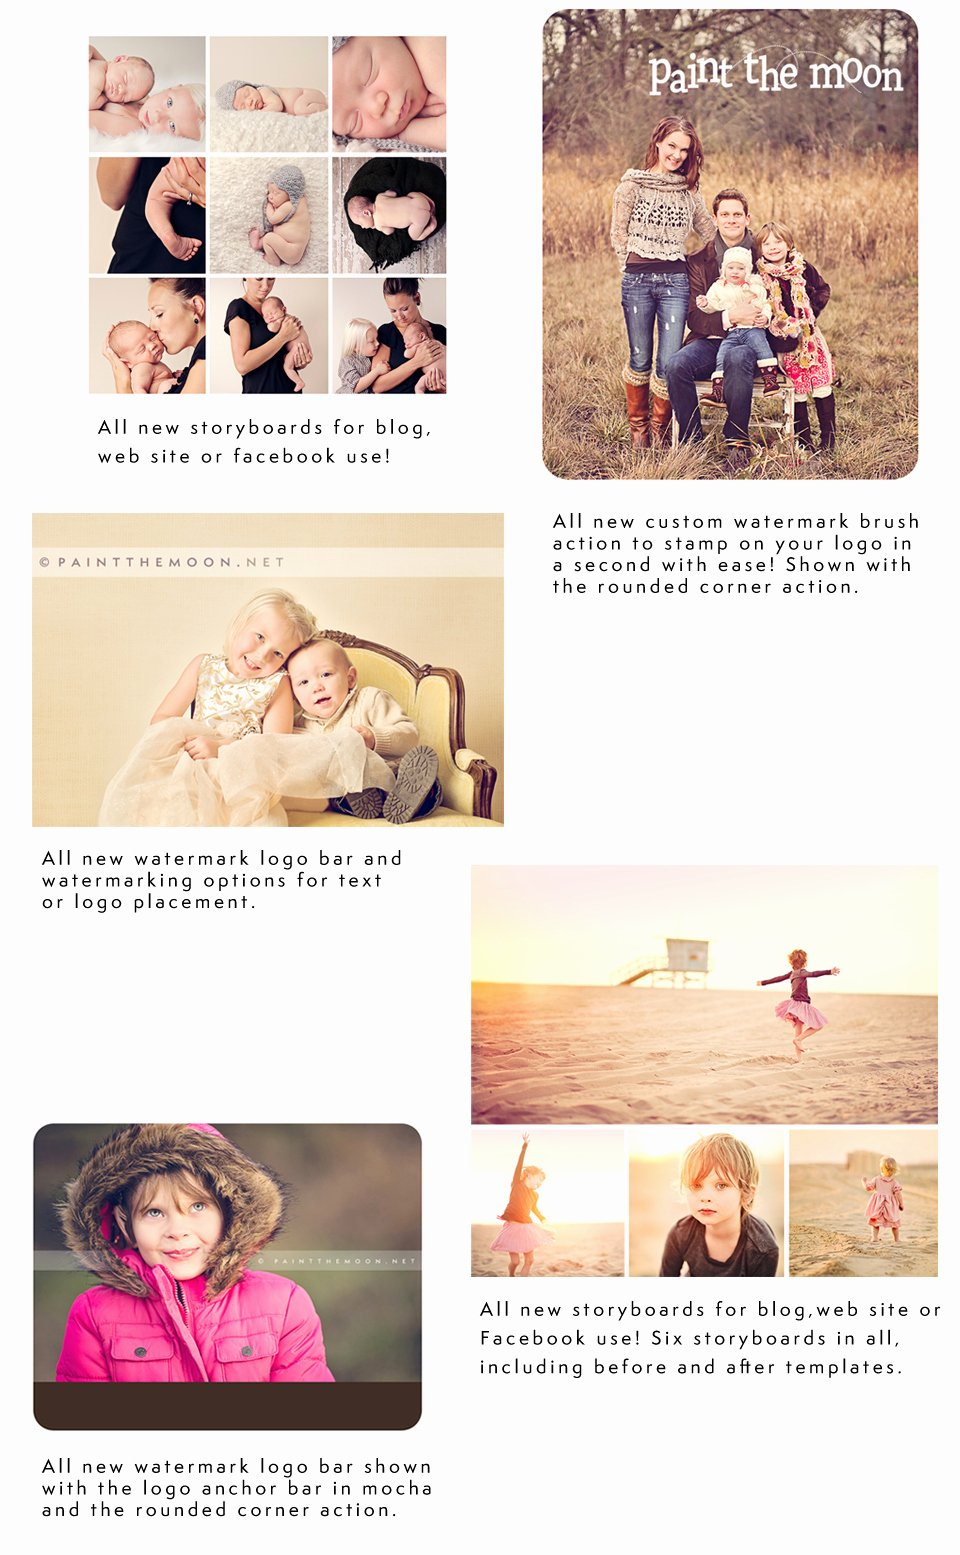 Free Photoshop Storyboard Templates Inspirational Free Shop Actions & Watermarking Storyboards and so